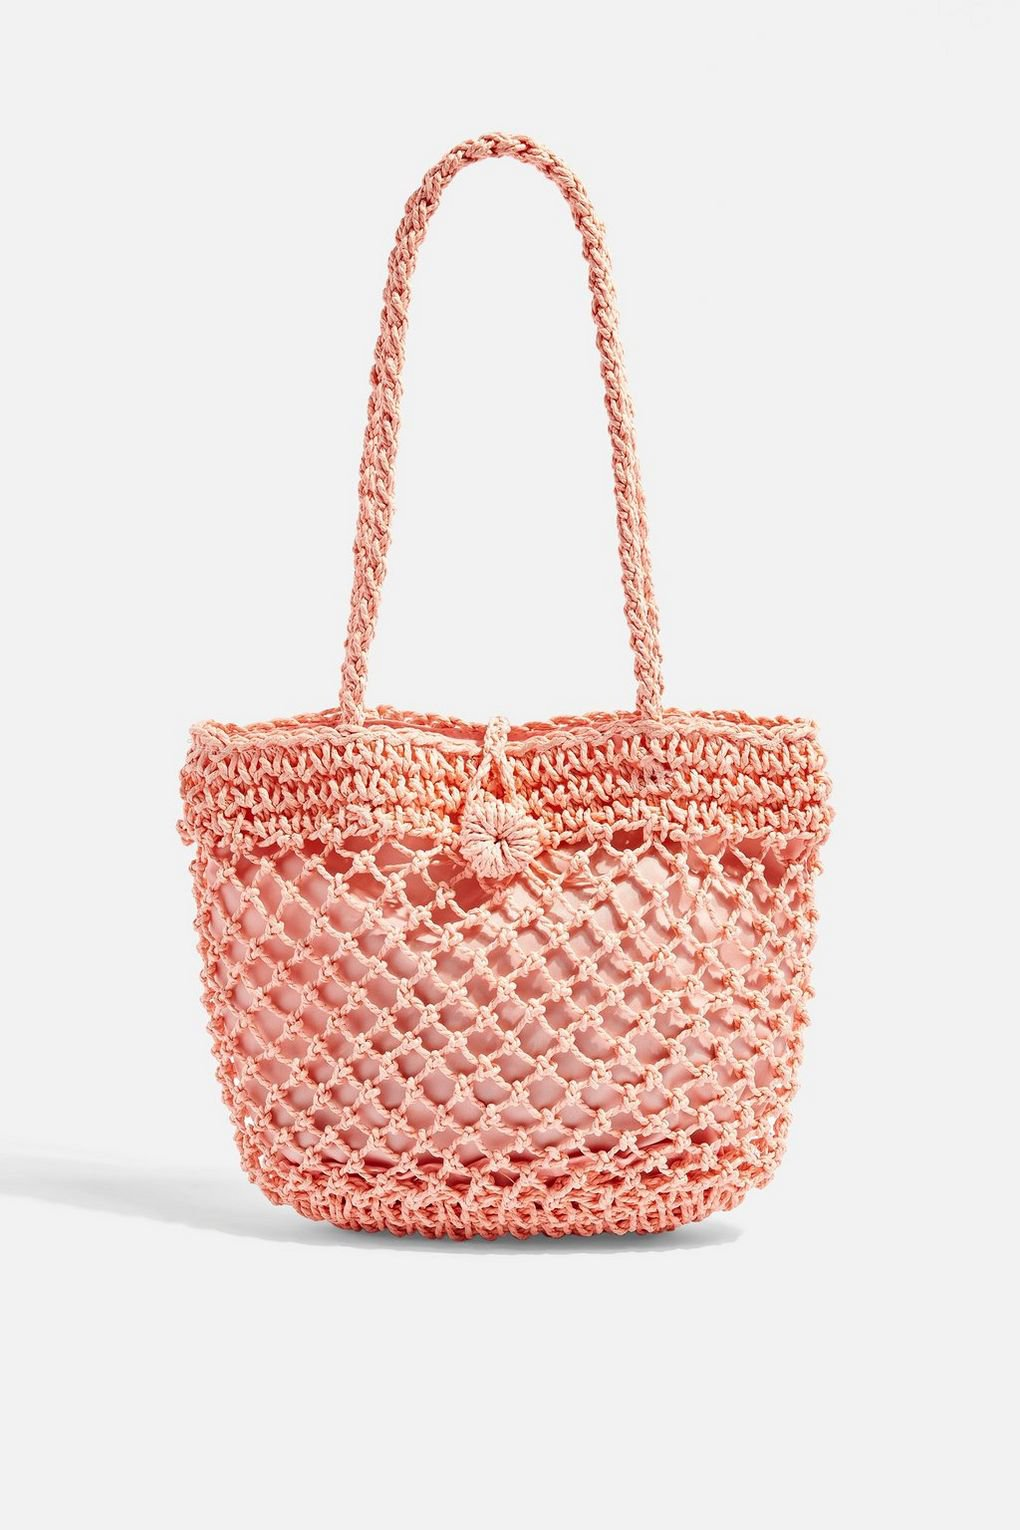 FIZZLE Pink Straw Tote Bag - Bags & Wallets - Bags & Accessories - Topshop USA